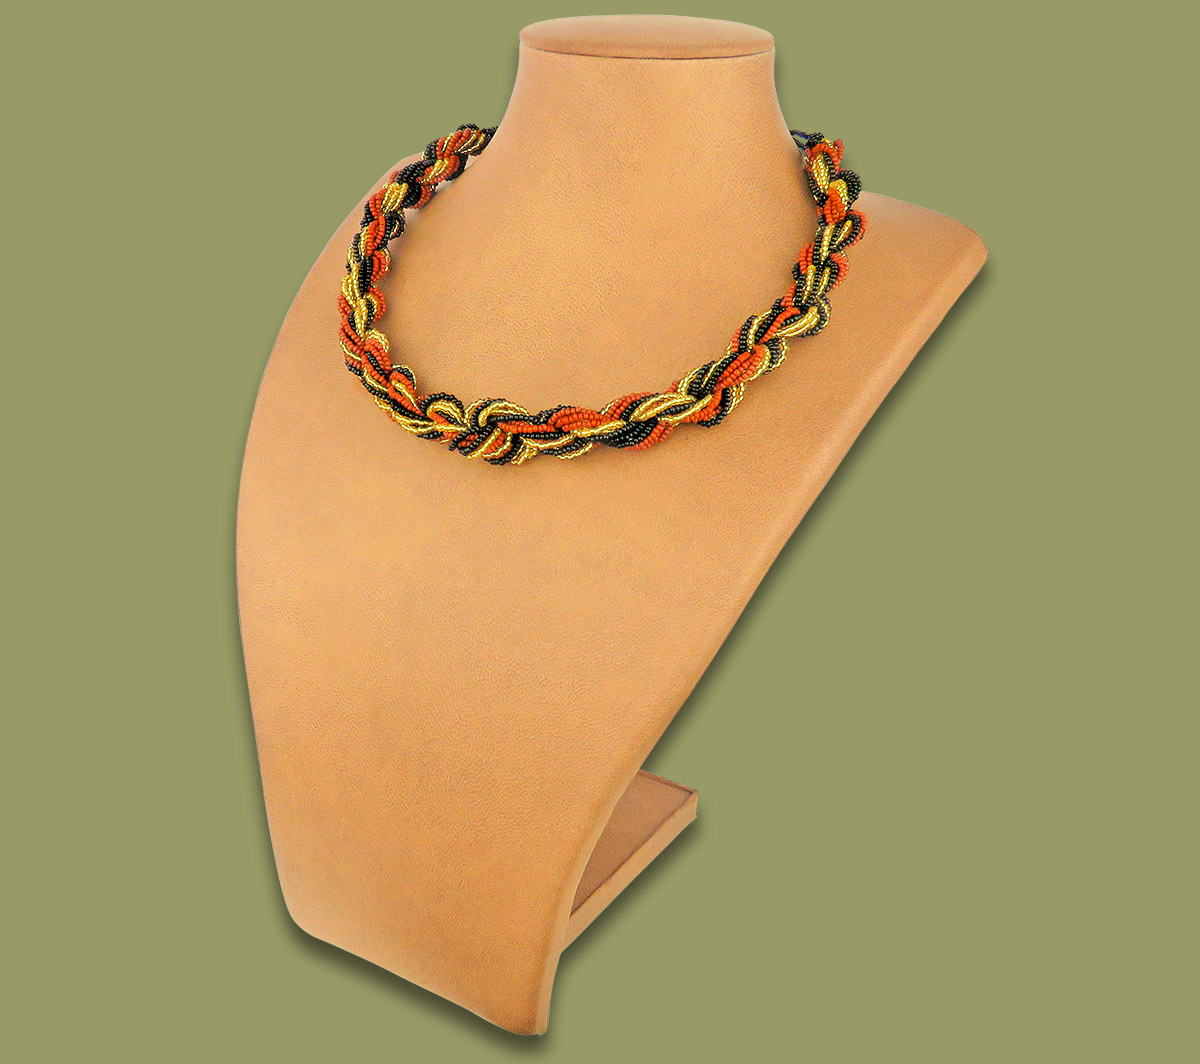 African Beaded Necklace Khanyo Brown Gold Black